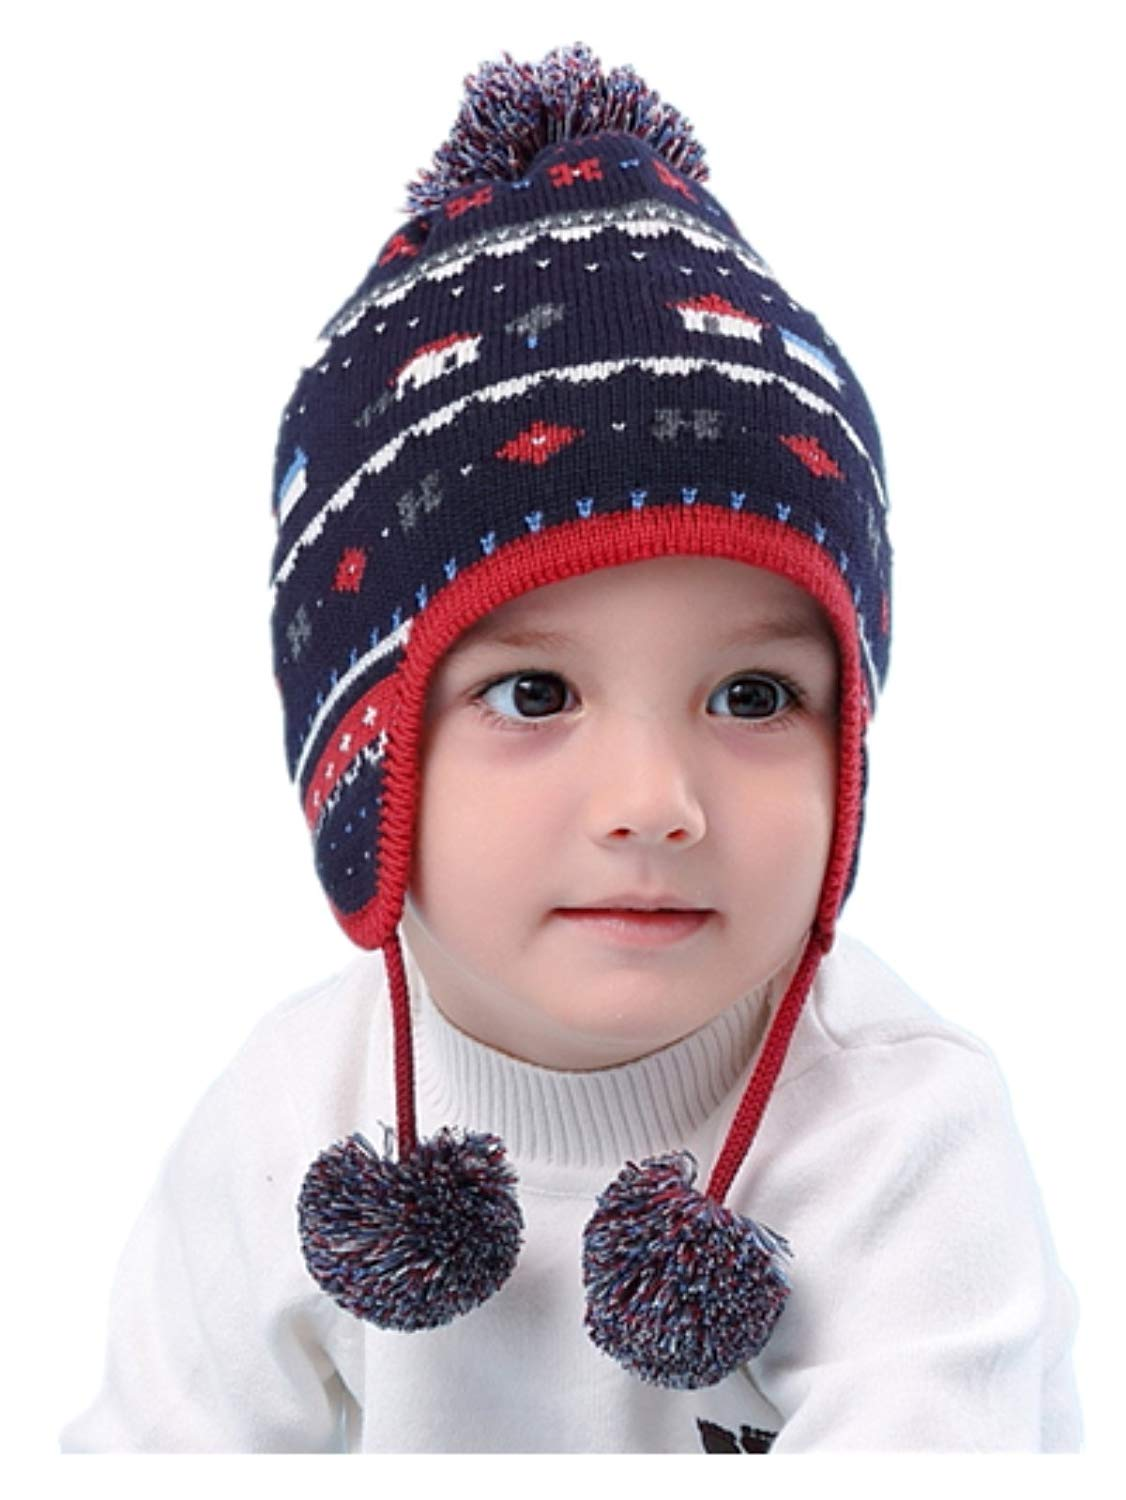 2a3a6dfa Get Quotations · LLmoway Baby Toddler Infant Knit Hat Earflap Beanie Cotton  Hat Warm Pom Cap